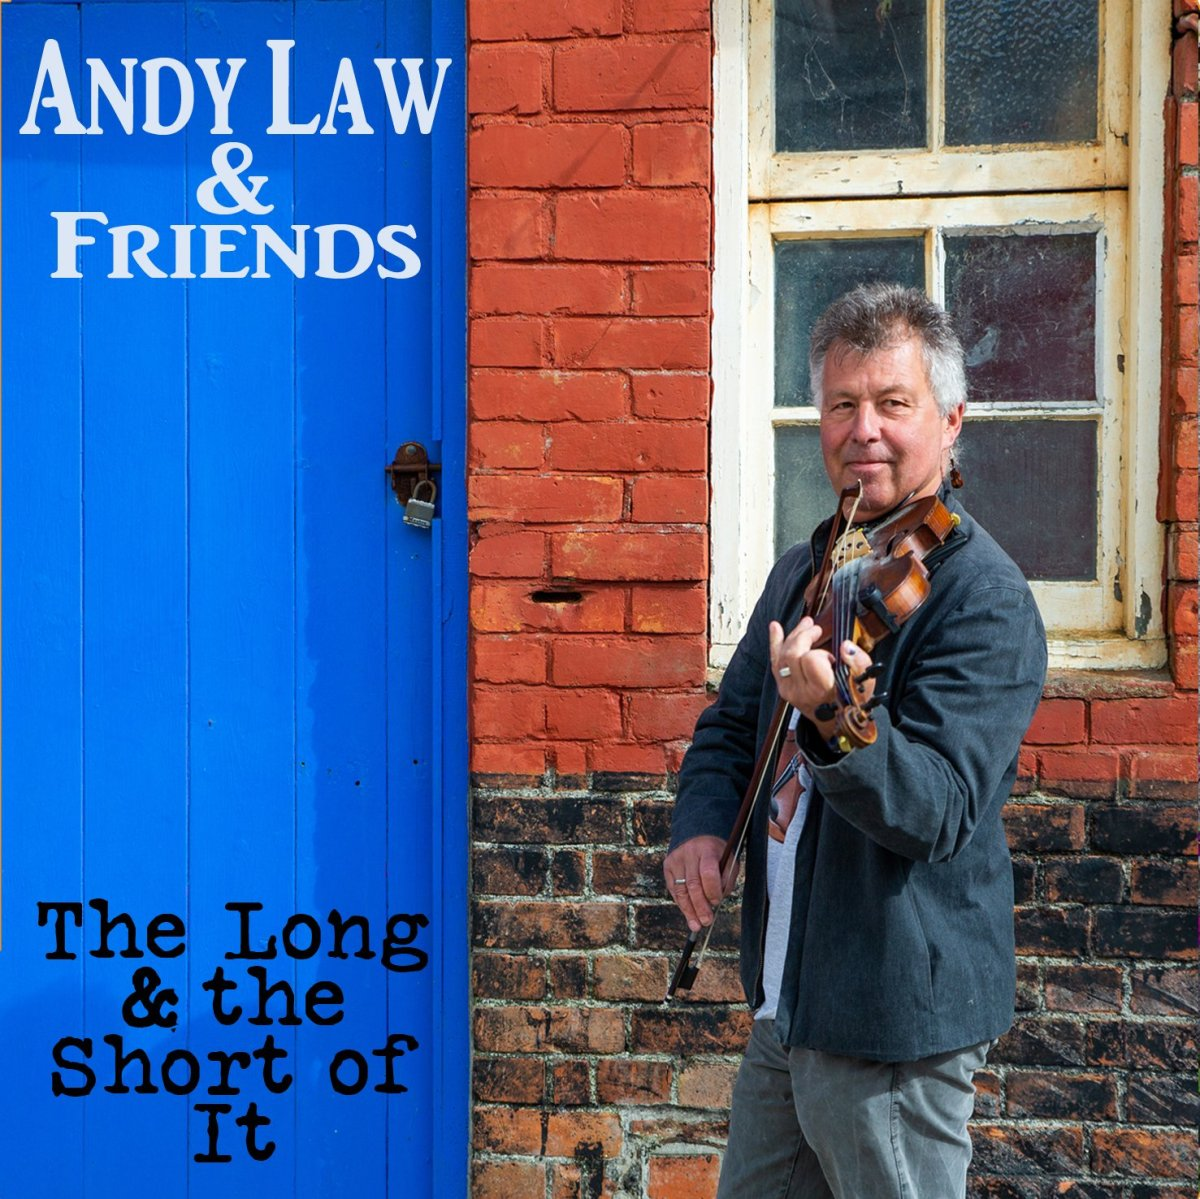 Album cover of Andy Law & Friends The Long and The Short of It showing Andy Law holding a fiddle in front of a red brick building with a blue door